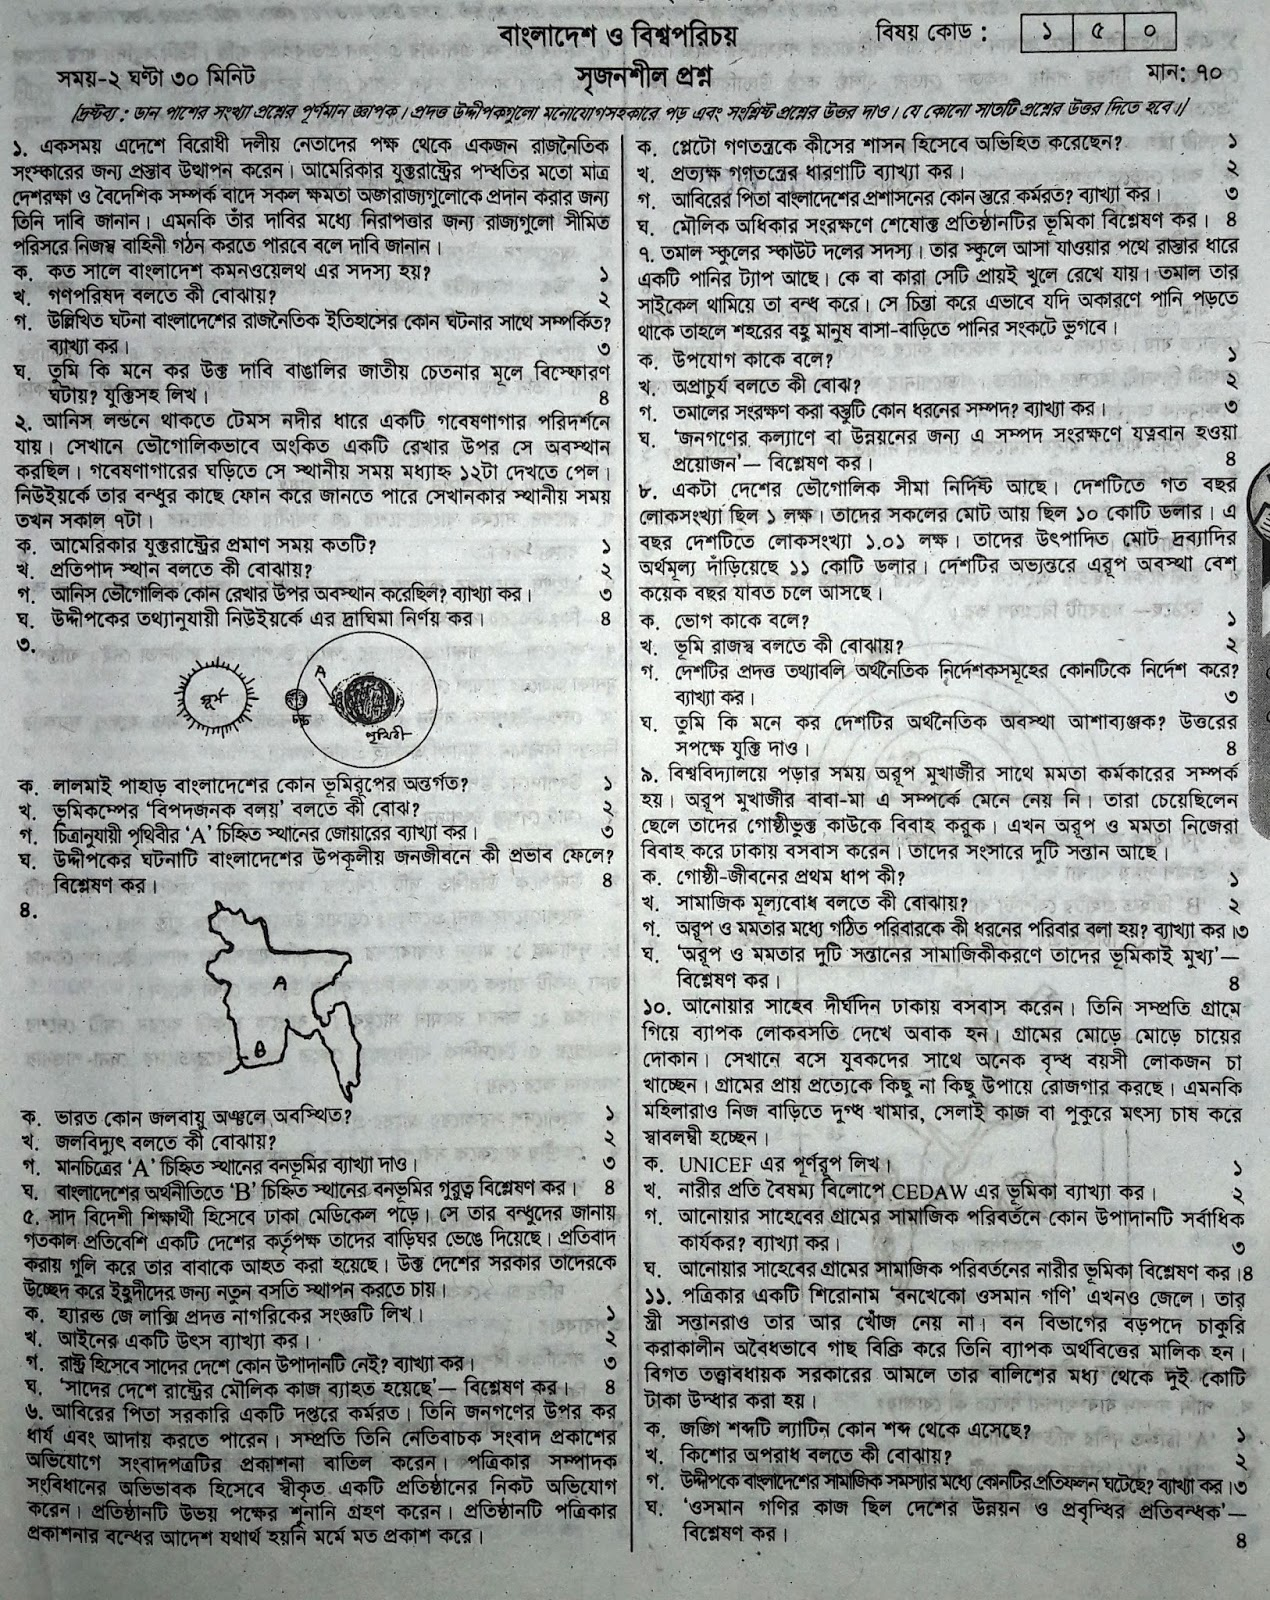 ssc Bangladesh and Global Studies suggestion, exam question paper, model question, mcq question, question pattern, preparation for dhaka board, all boards